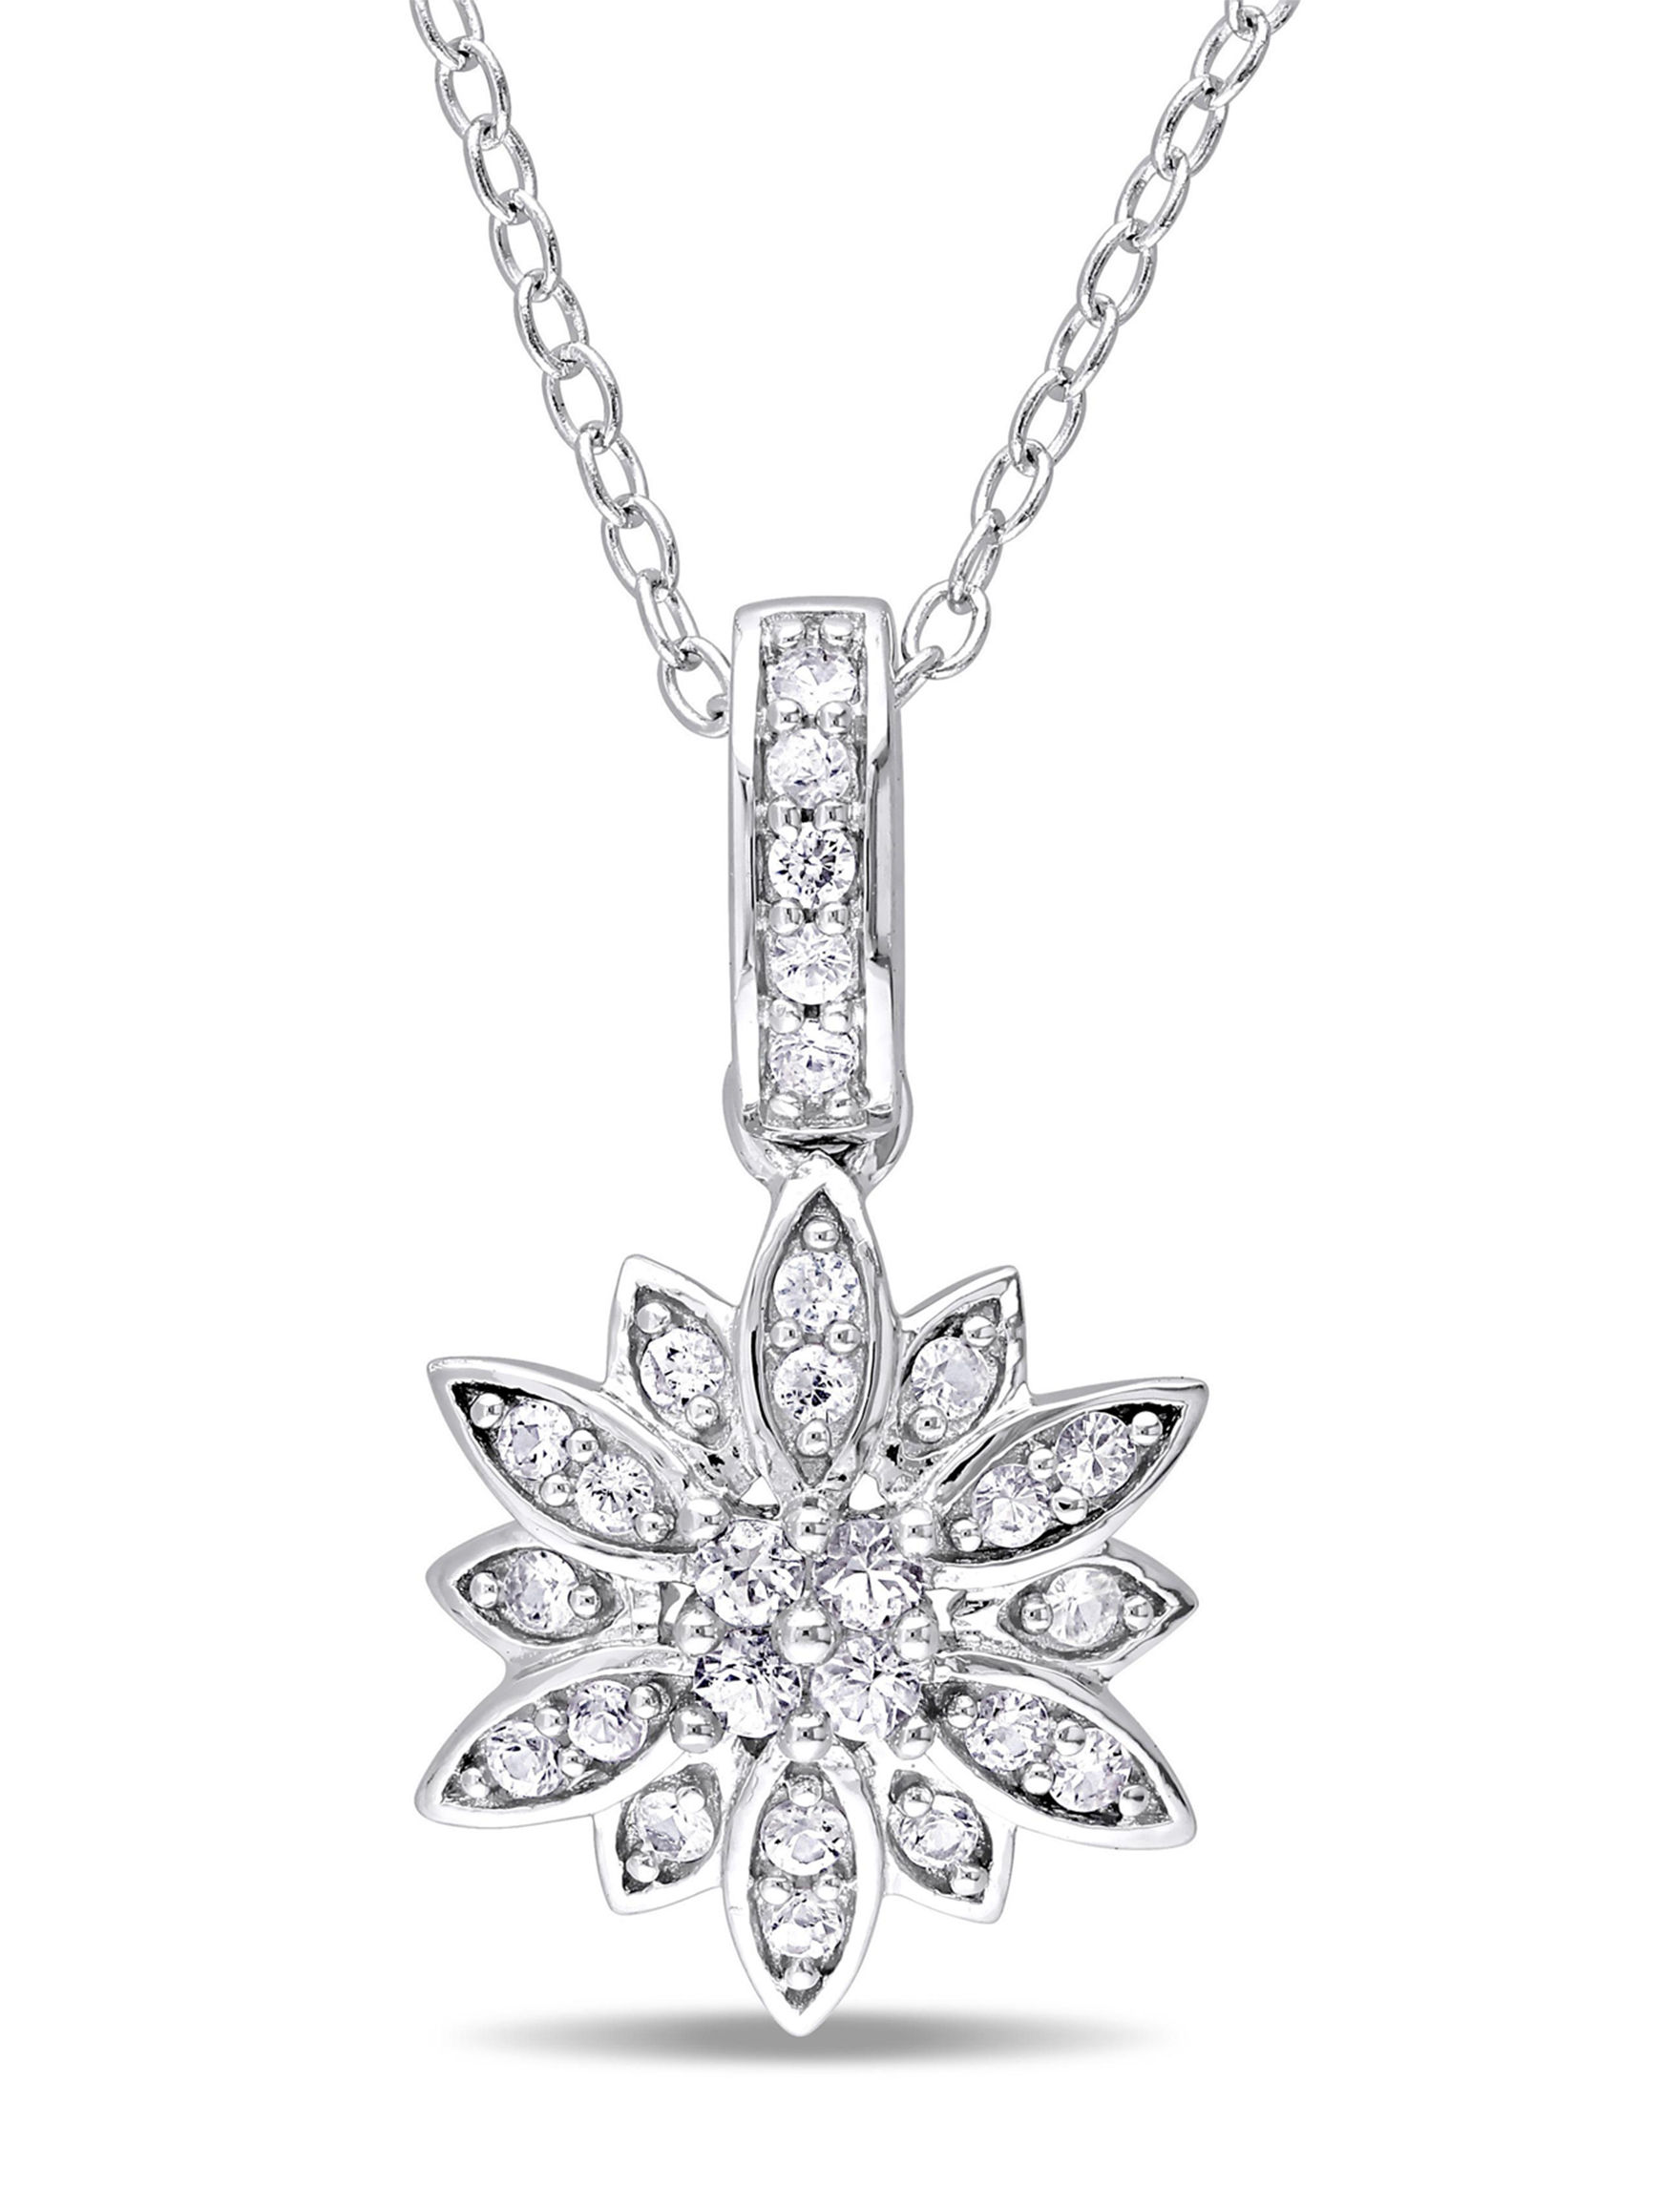 Laura Ashley Silver Necklaces & Pendants Fine Jewelry